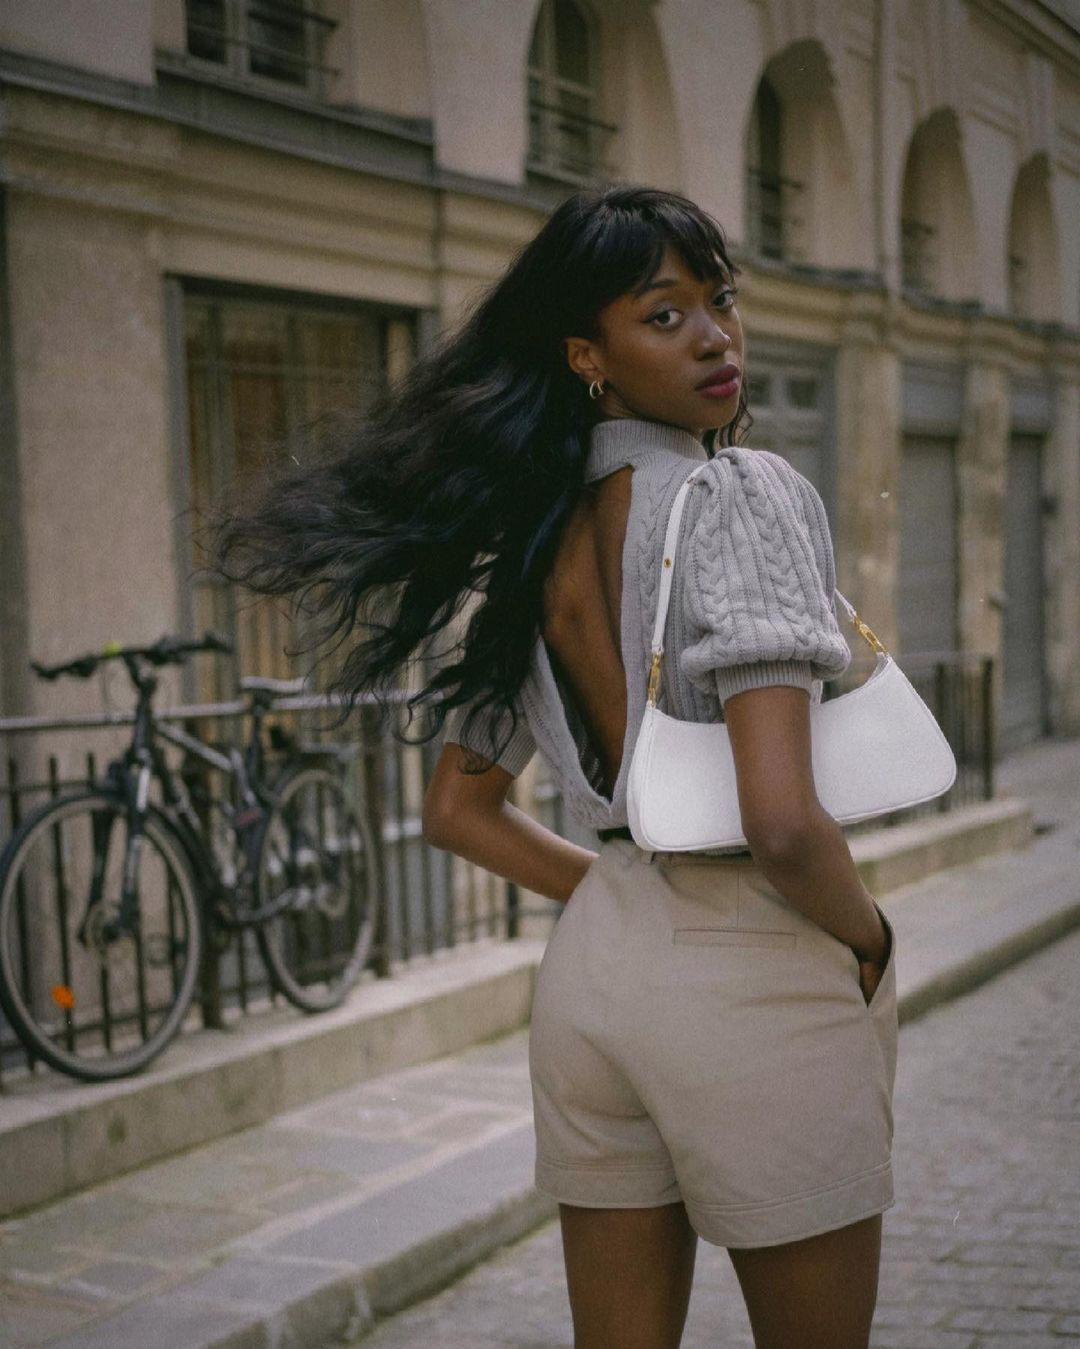 Black woman wearing a backless sweater in grey, beige shorts and a white shoulder bag looking at the camera